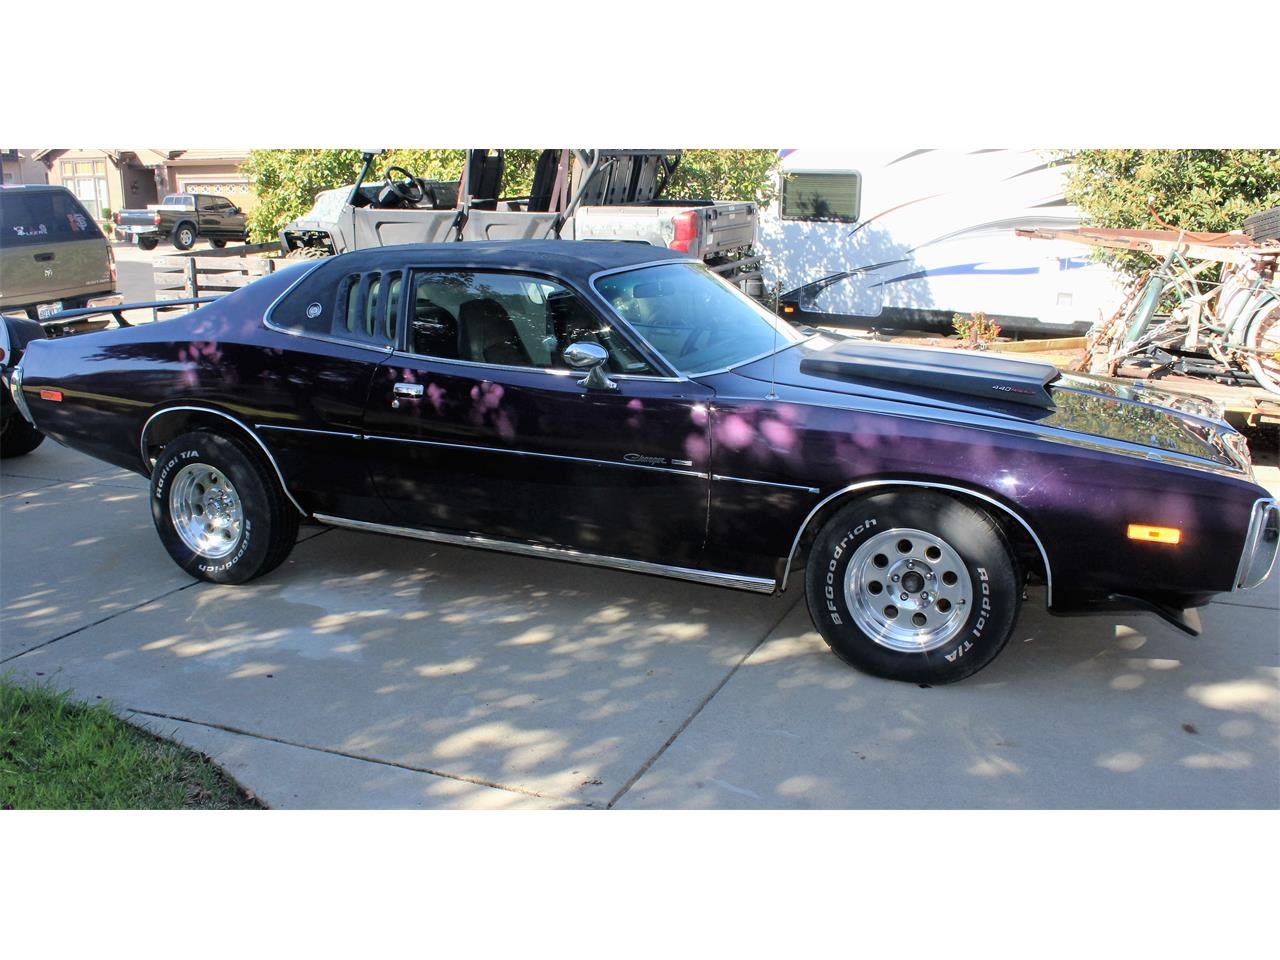 Large Picture of 1974 Dodge Charger located in Auburn California - $13,500.00 - J8HA